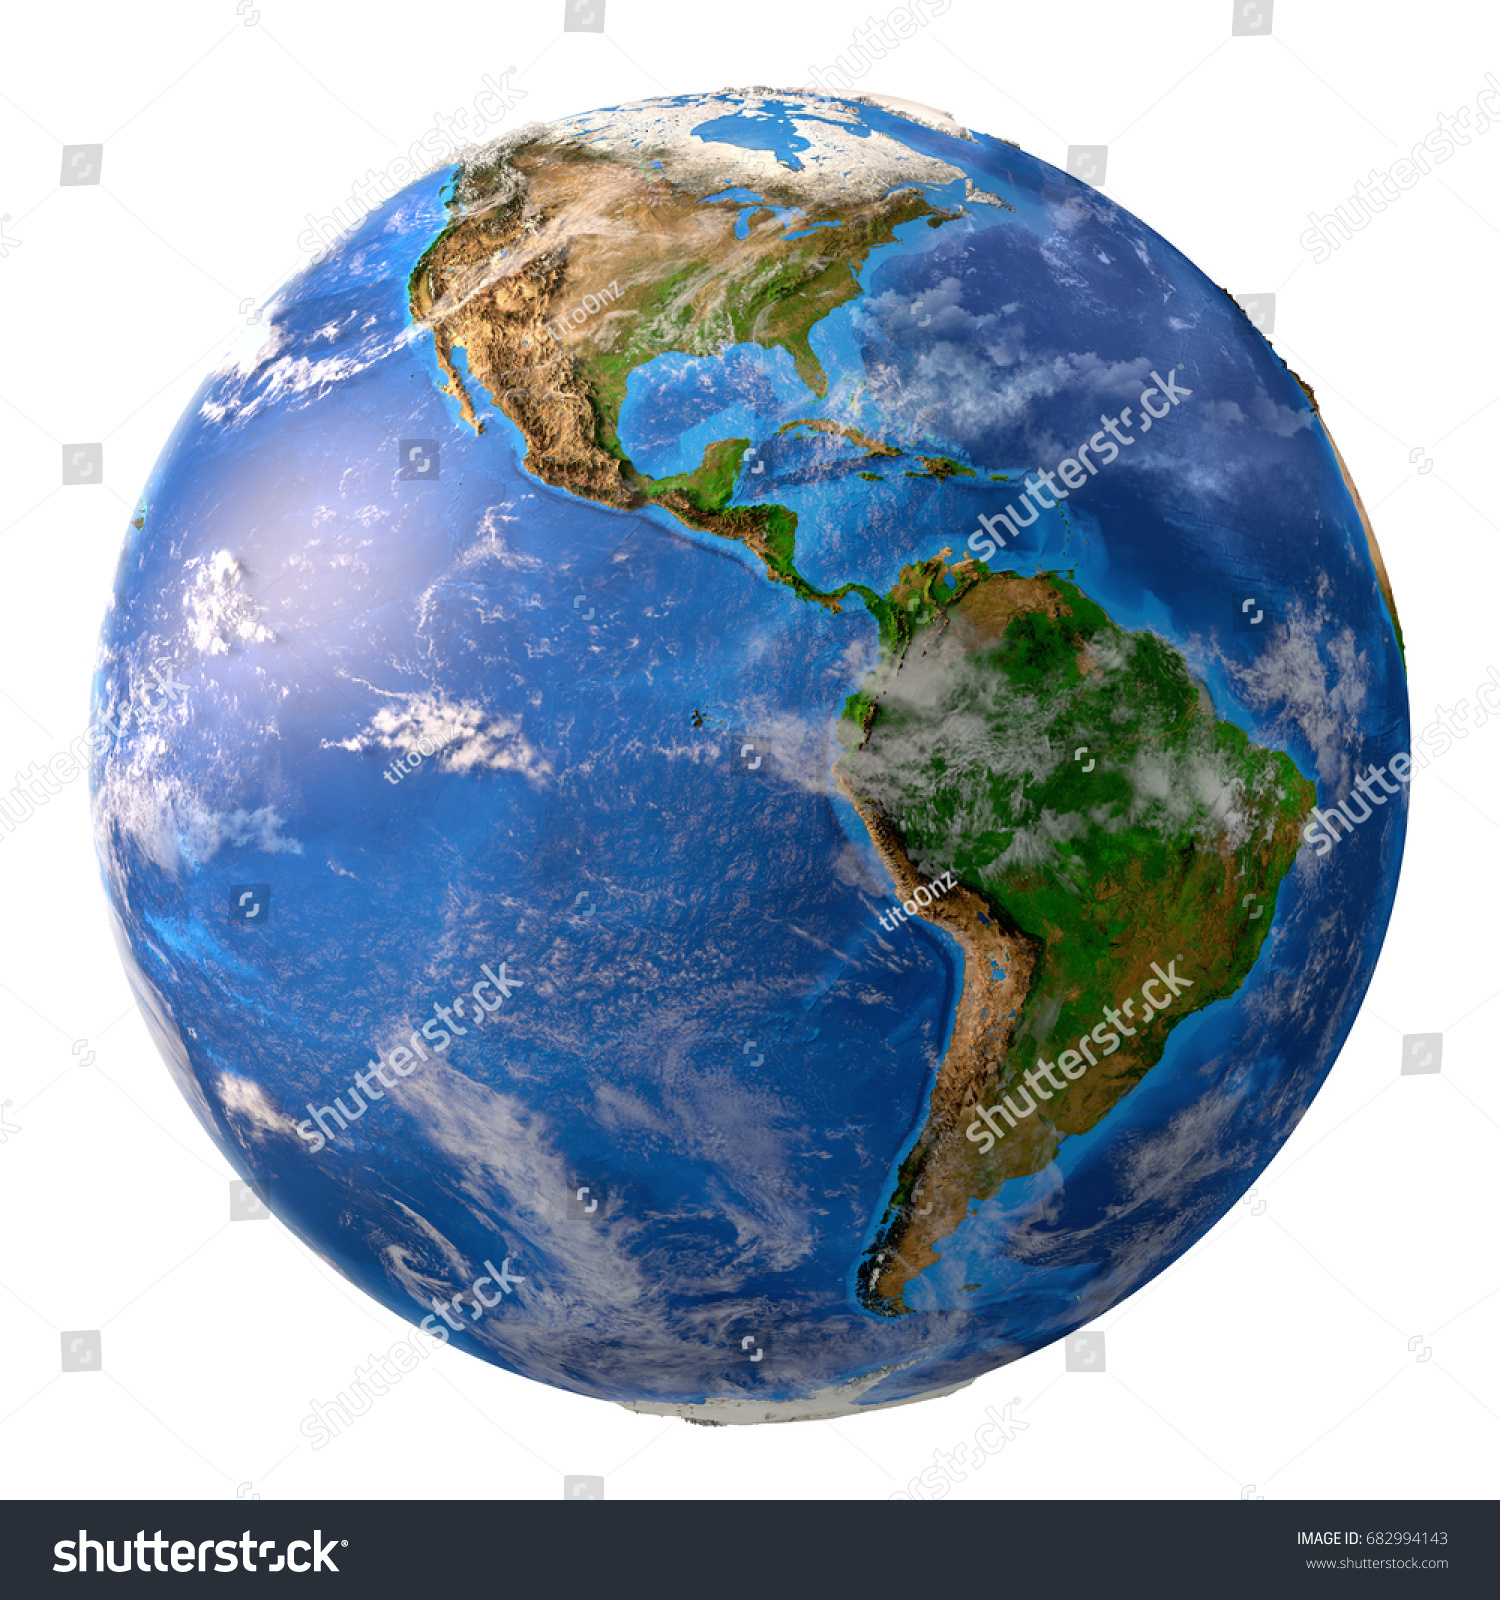 Planet Earth High Detailed Satellite View Stockillustration ...